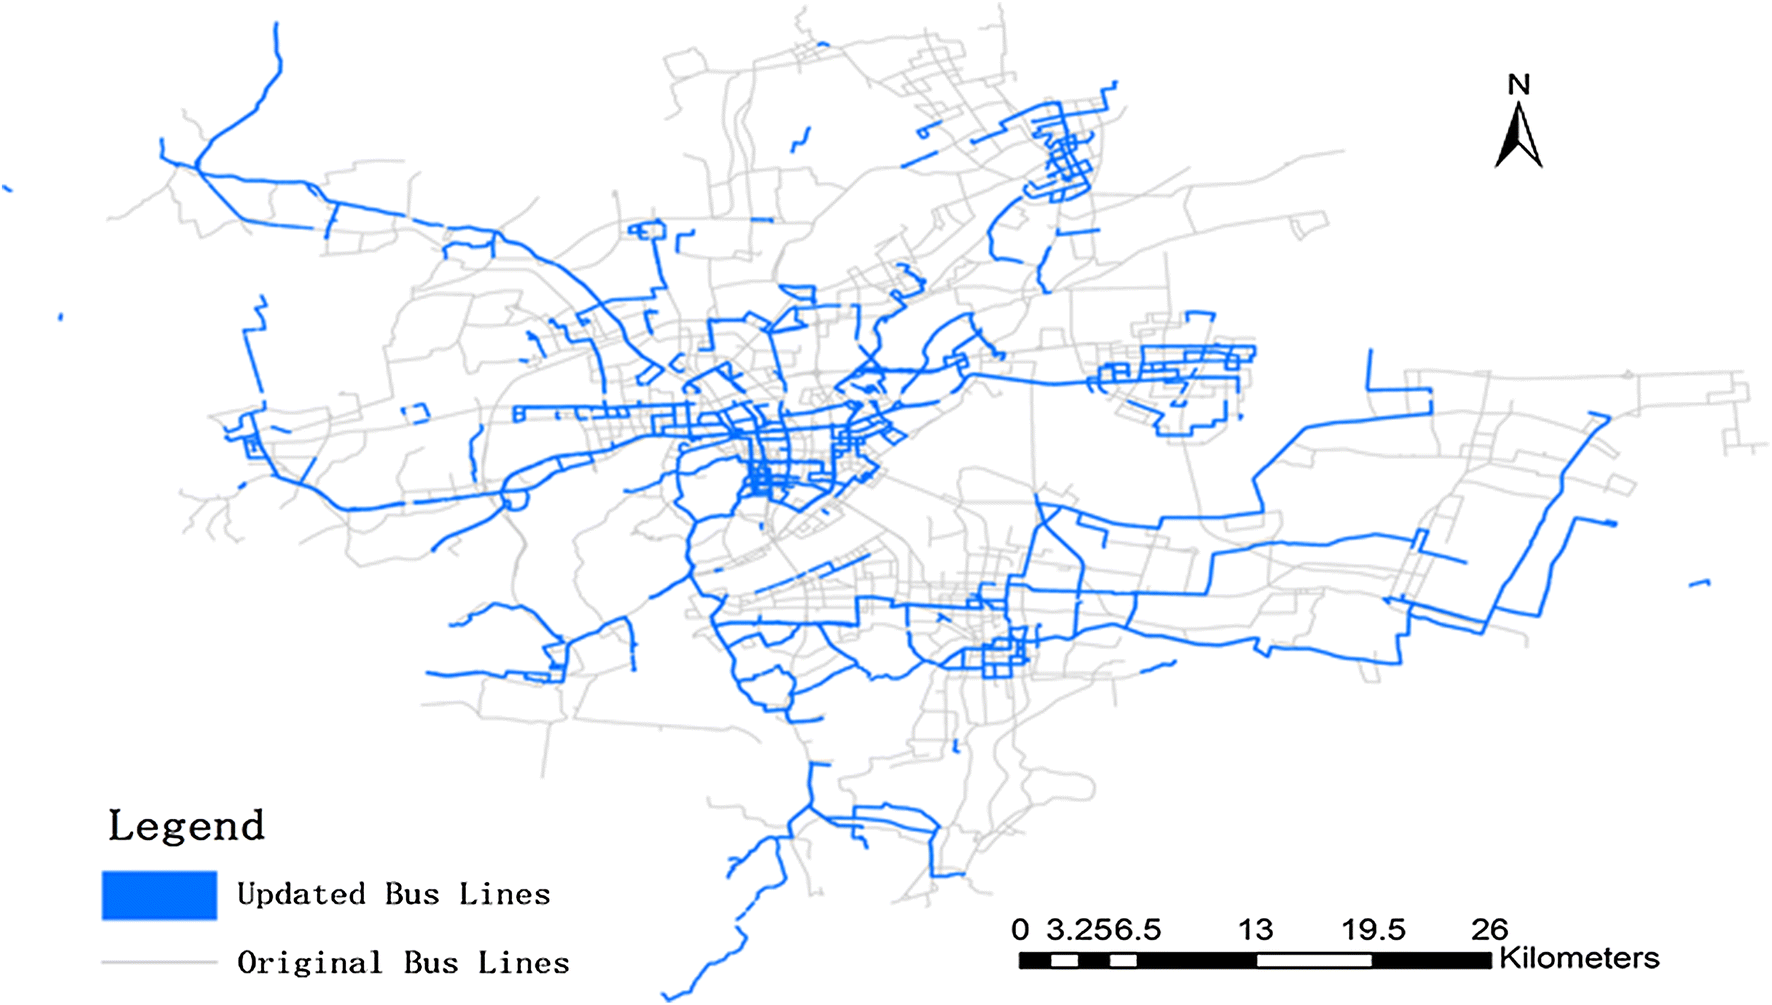 Spatiotemporal analysis of trajectory for a new real-time bus routes ...